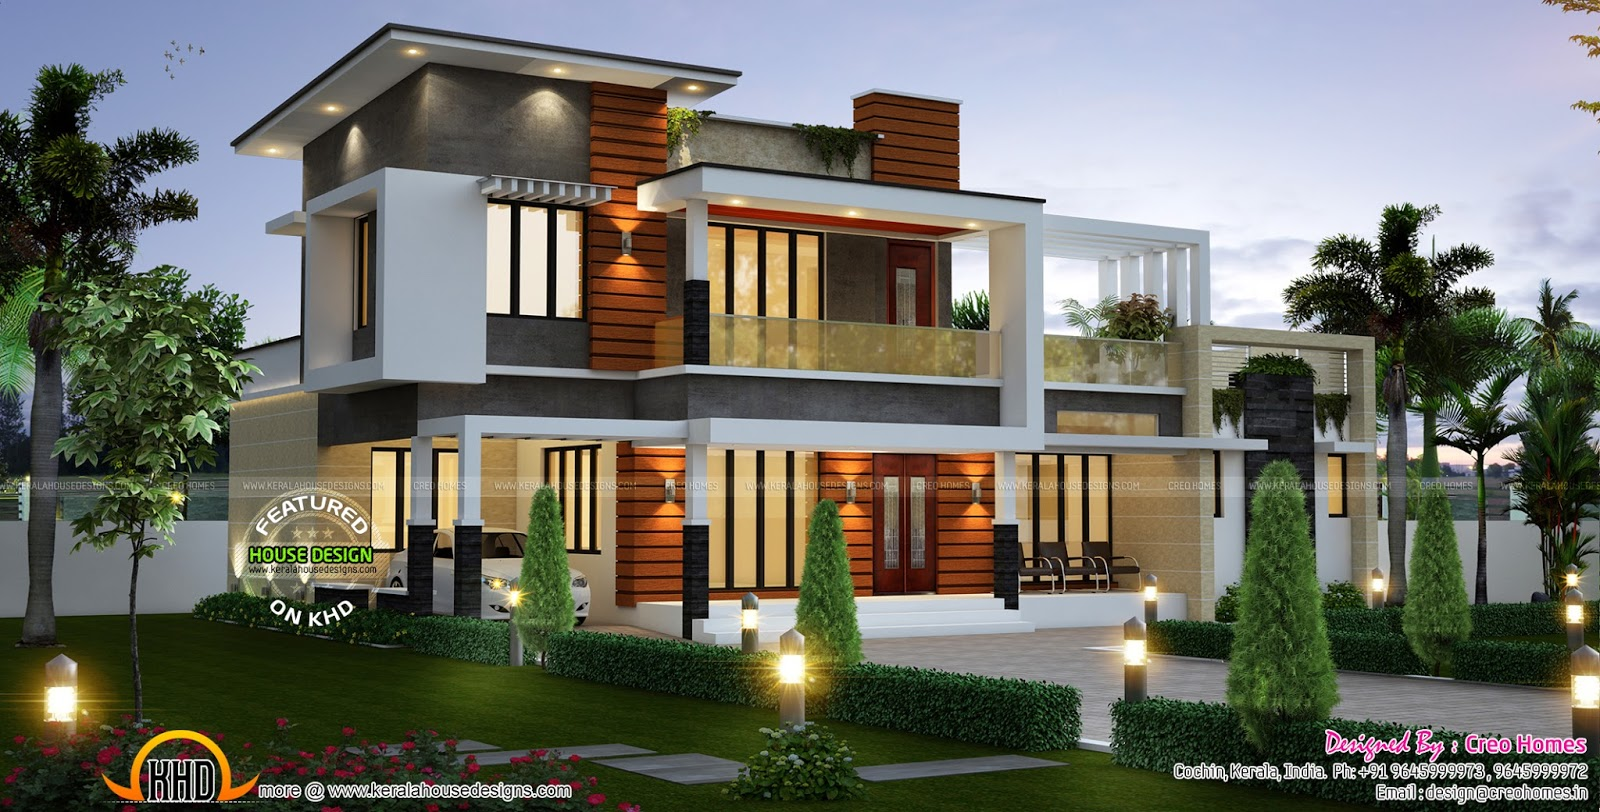 2075 sq ft modern contemporary house kerala home design for Modern house plans and designs